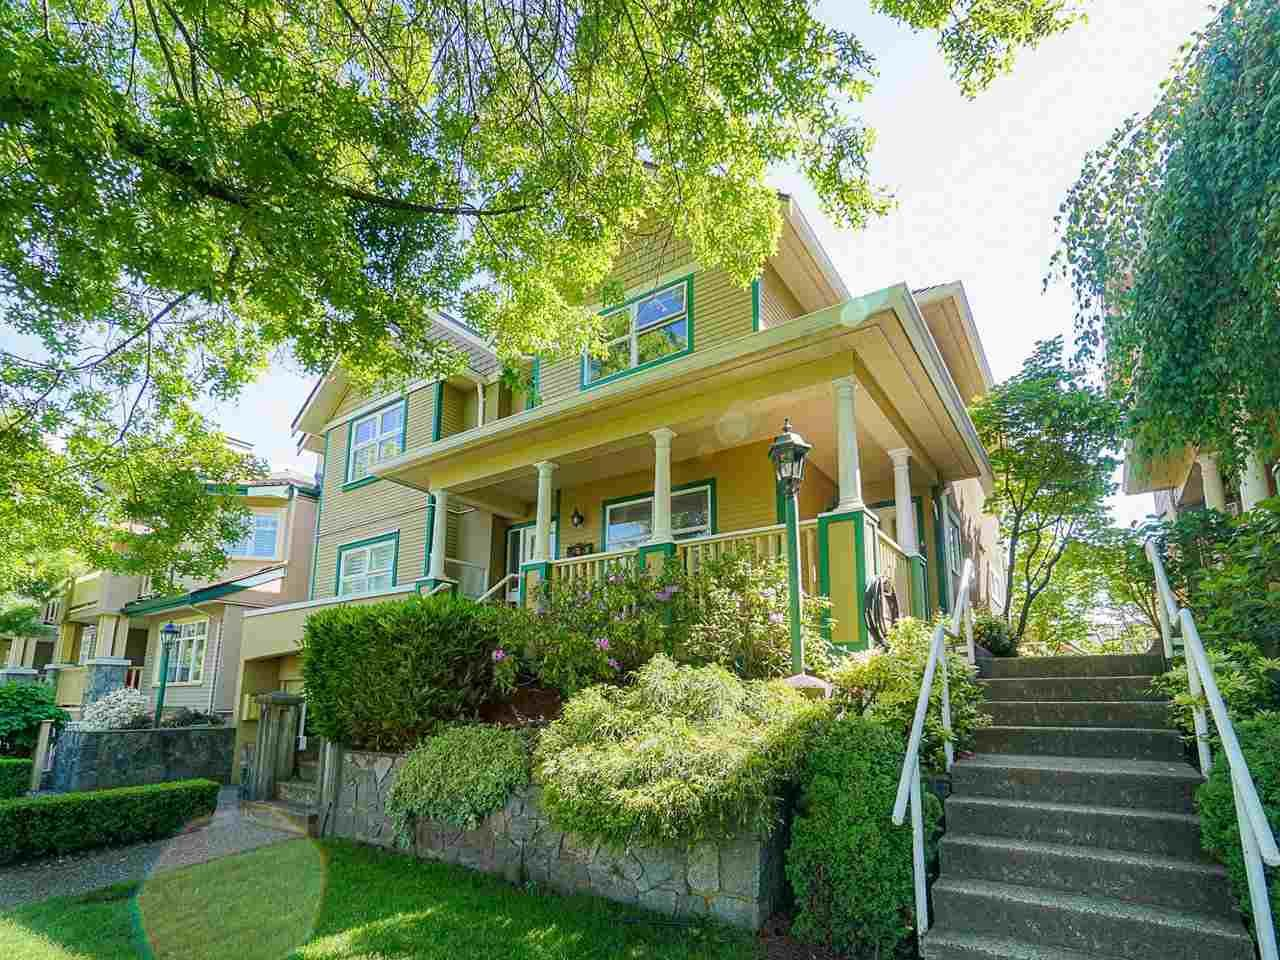 """Photo 2: Photos: 4 235 E KEITH Road in North Vancouver: Lower Lonsdale Townhouse for sale in """"Carriage Hill"""" : MLS®# R2471169"""